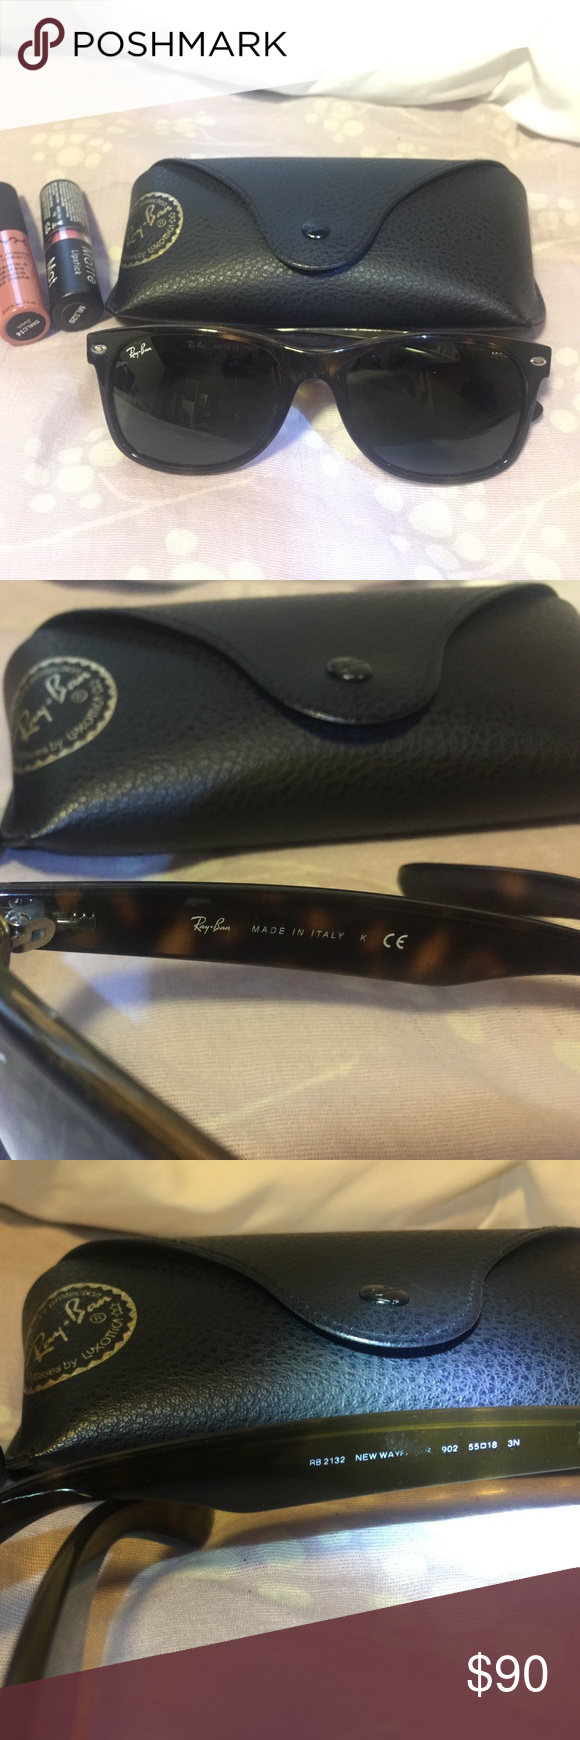 wholesale ray bans